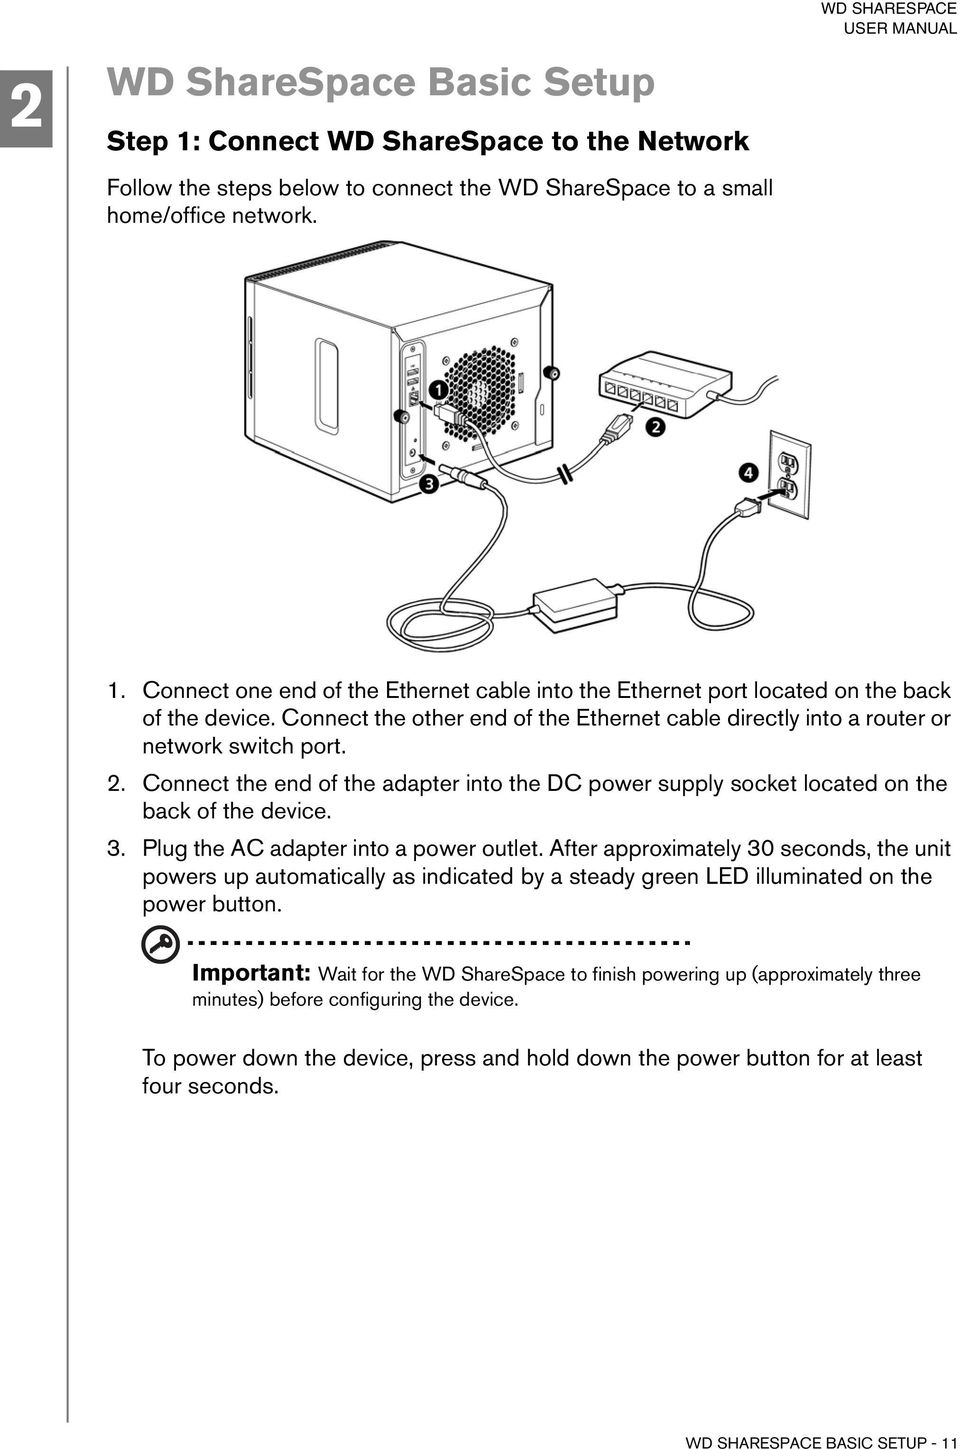 Wd Sharespace Network Storage System User Guide Pdf Small Office Setup Diagram Plug The Ac Adapter Into A Power Outlet After Approximately 30 Seconds Unit